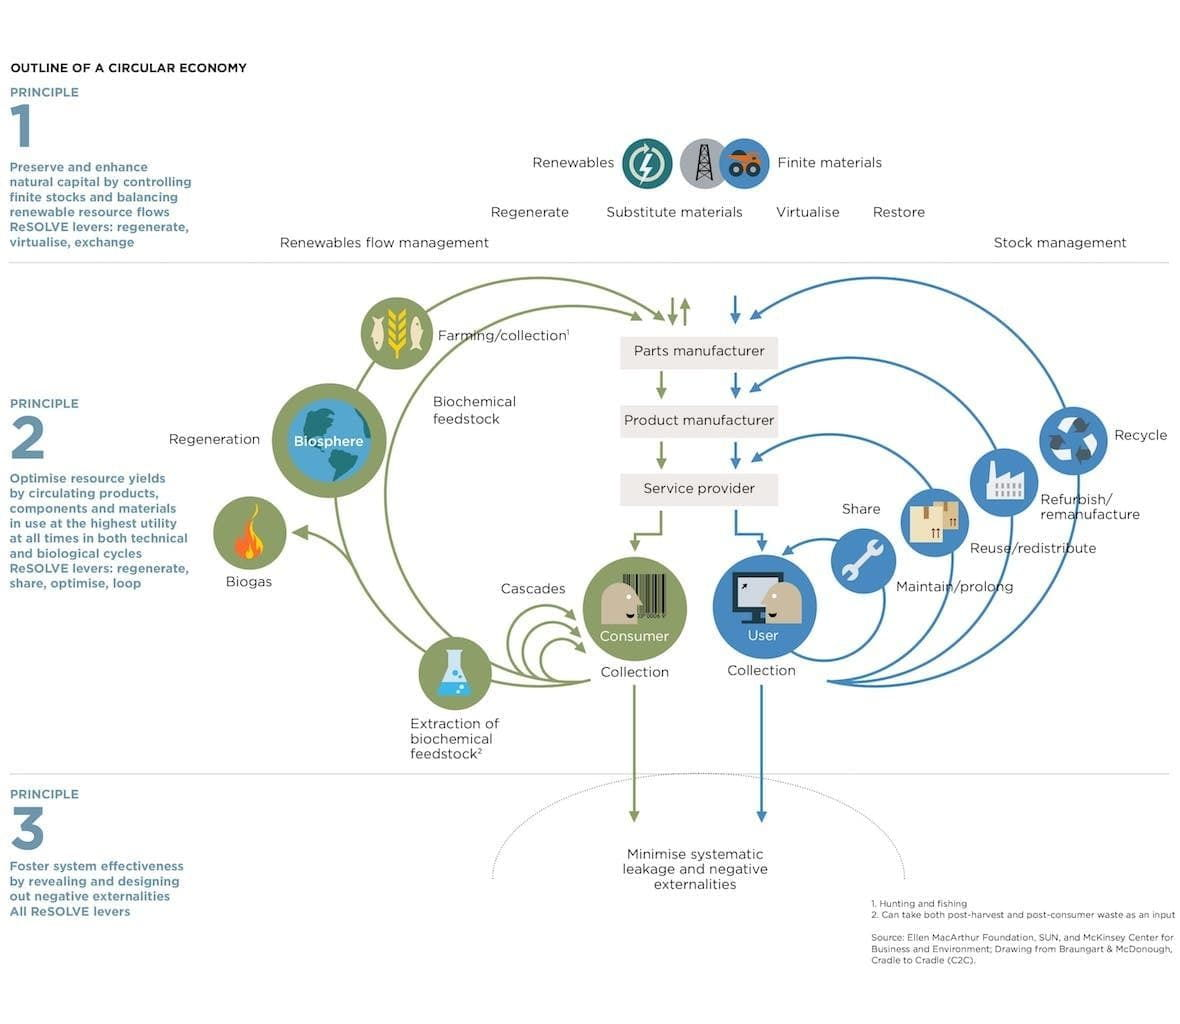 Outline of a Circular Economy. Principle 1, preserve and enhance natural capital by controlling finite stocks and balancing renewable resource flows. ReSOLVE levers: regenerate, virtualize, exchange. Principle 2, optimize resource yields by circulating products, components and materials in use at the highest utility at all times in both technical and biological cycles. ReSOLVE levers: regenerate, share, optimize, loop. Principle 3, foster system effectiveness by revealing and designing out negative externalities. All ReSOLVE levers. The adjacent flowchart shows how organic and artificial materials can be reused and re-purposed to minimize systematic leakage of resources.